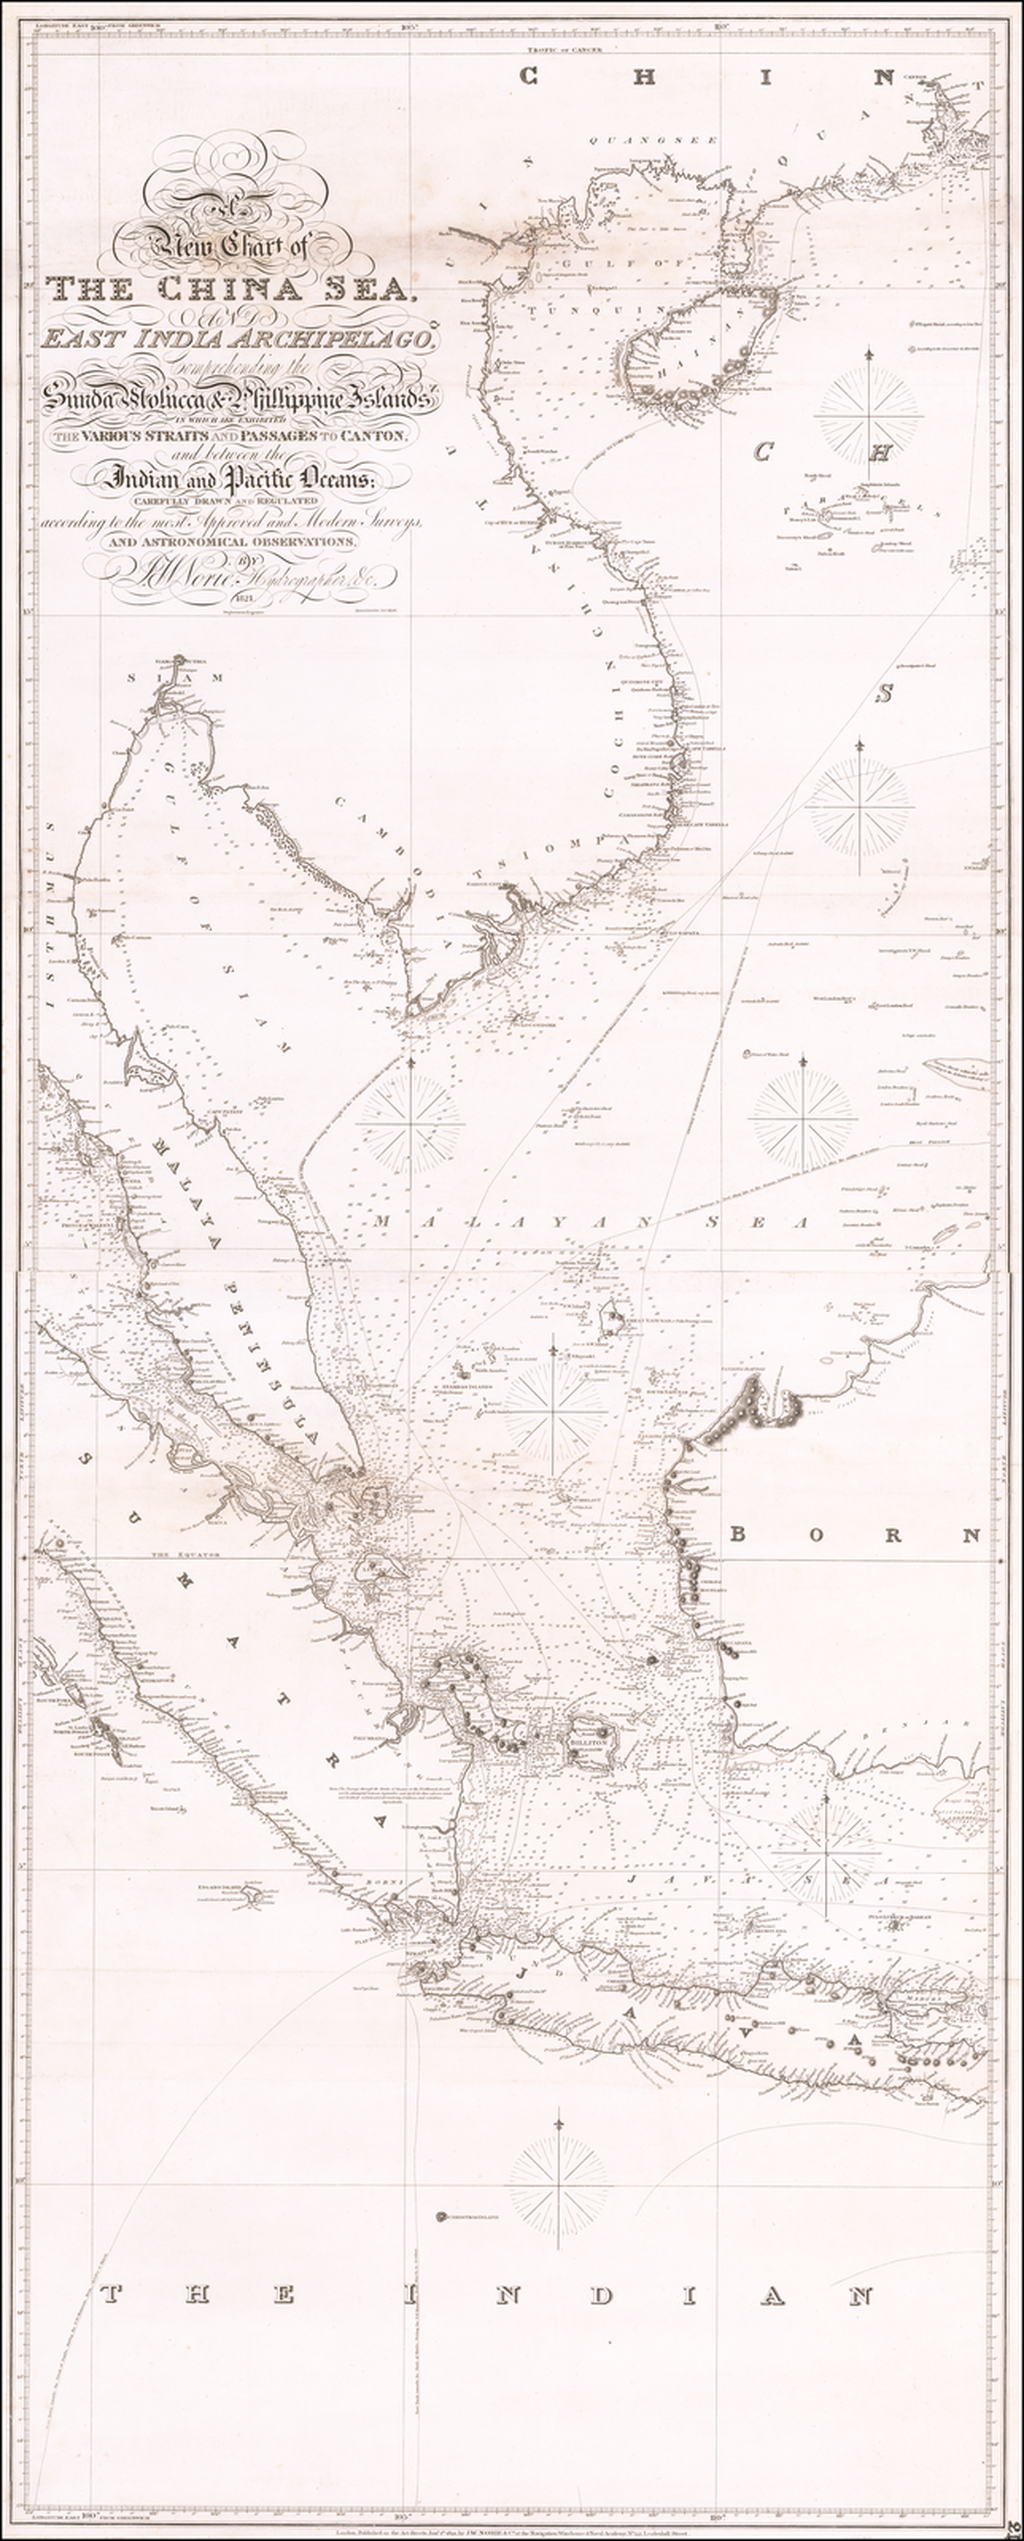 A New Chart of the China Sea, and East India Archipelago, Comprehending the Sunda Molucca & Phillippine Islands in which are exhibited the Various Straits and Passages to Canton, and between the Indian and Pacific Oceans. . . 1821.  Additions to 1826. By John William Norie